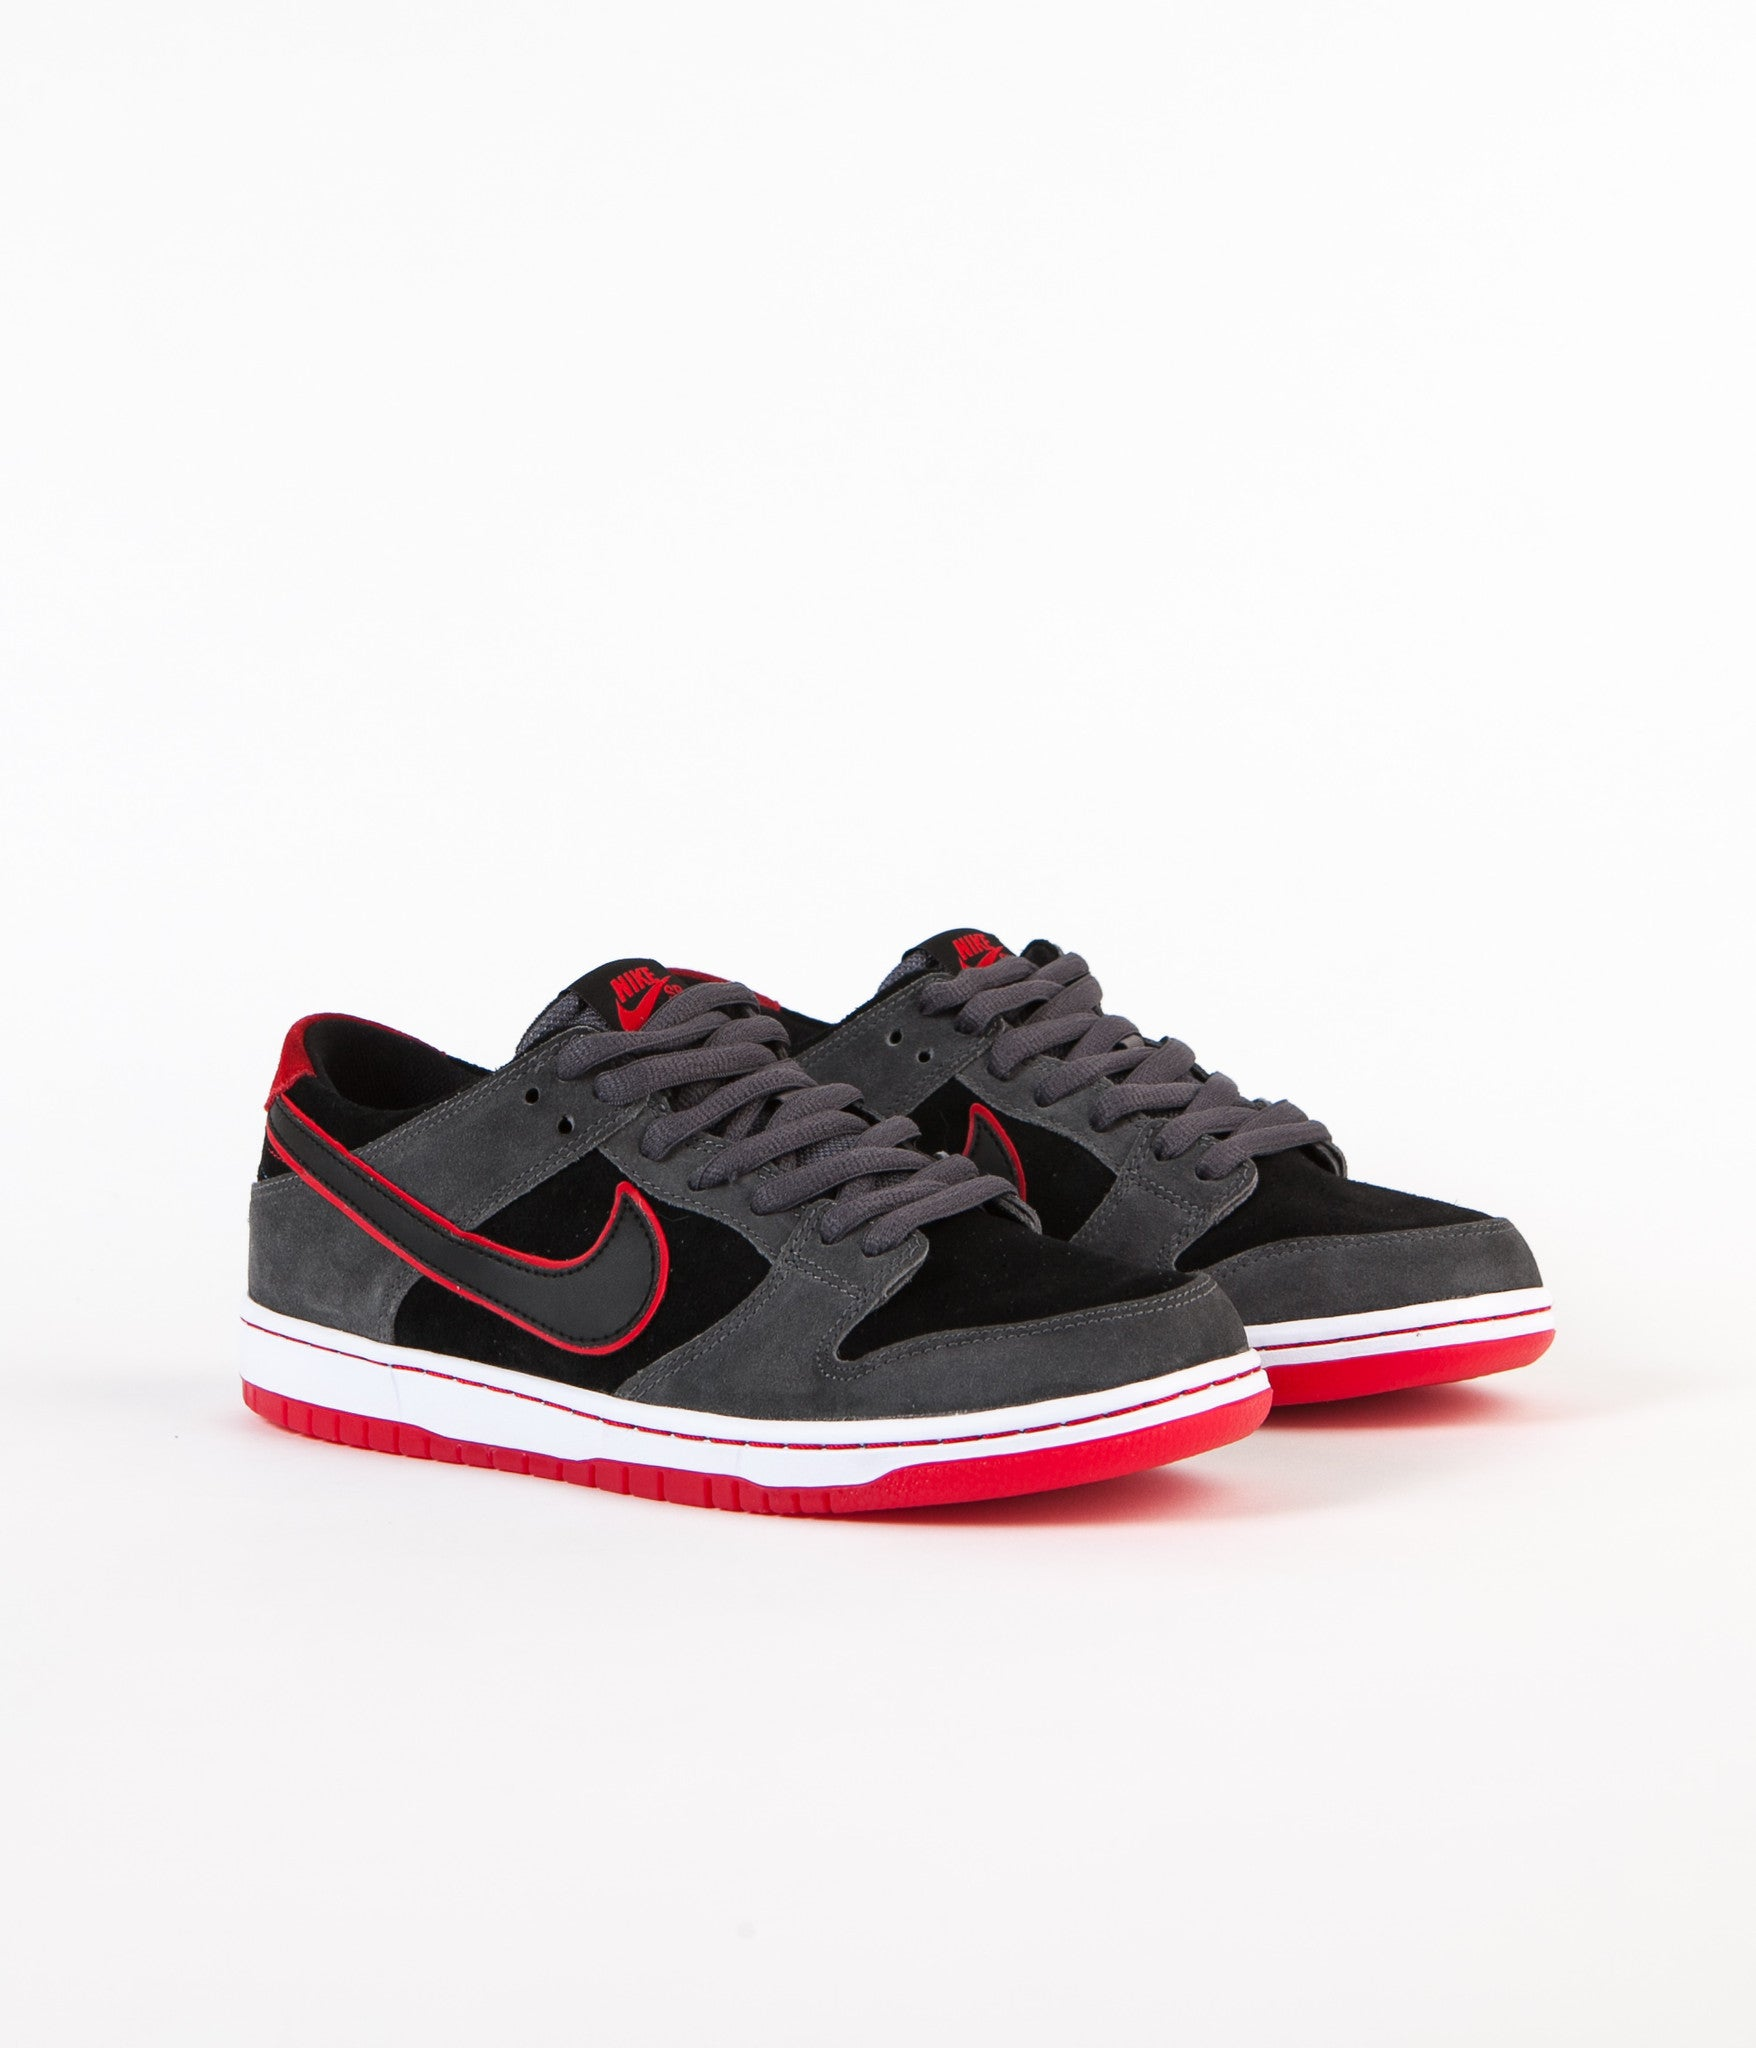 ... Nike SB Dunk Low Pro Ishod Wair Shoes - Dark Grey   Black - University  Red ... 060664e401